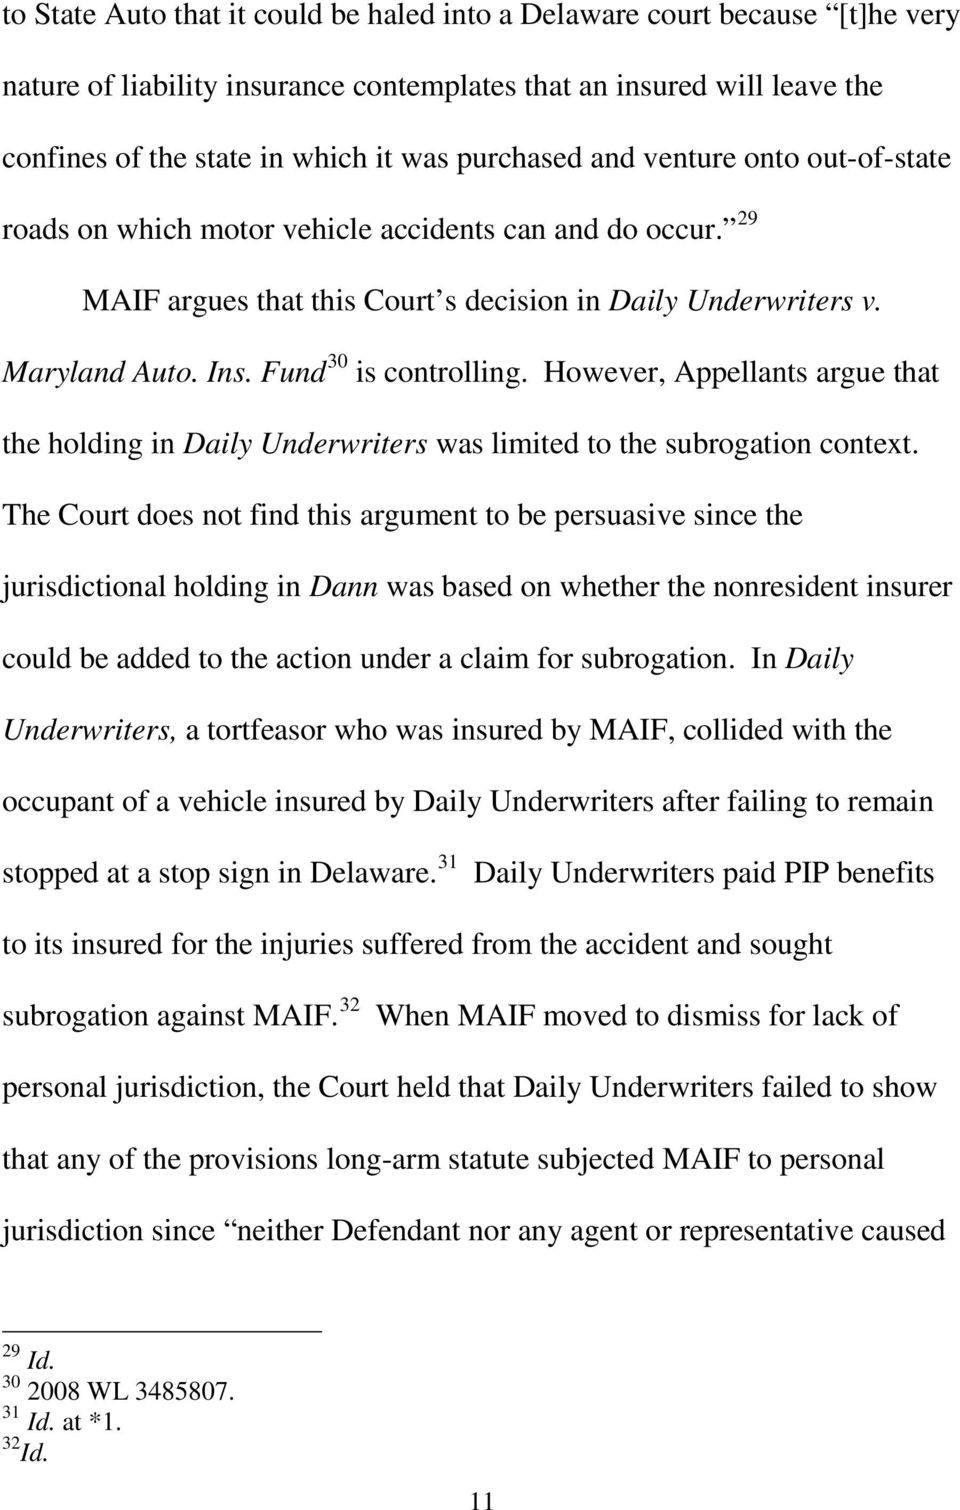 However, Appellants argue that the holding in Daily Underwriters was limited to the subrogation context.